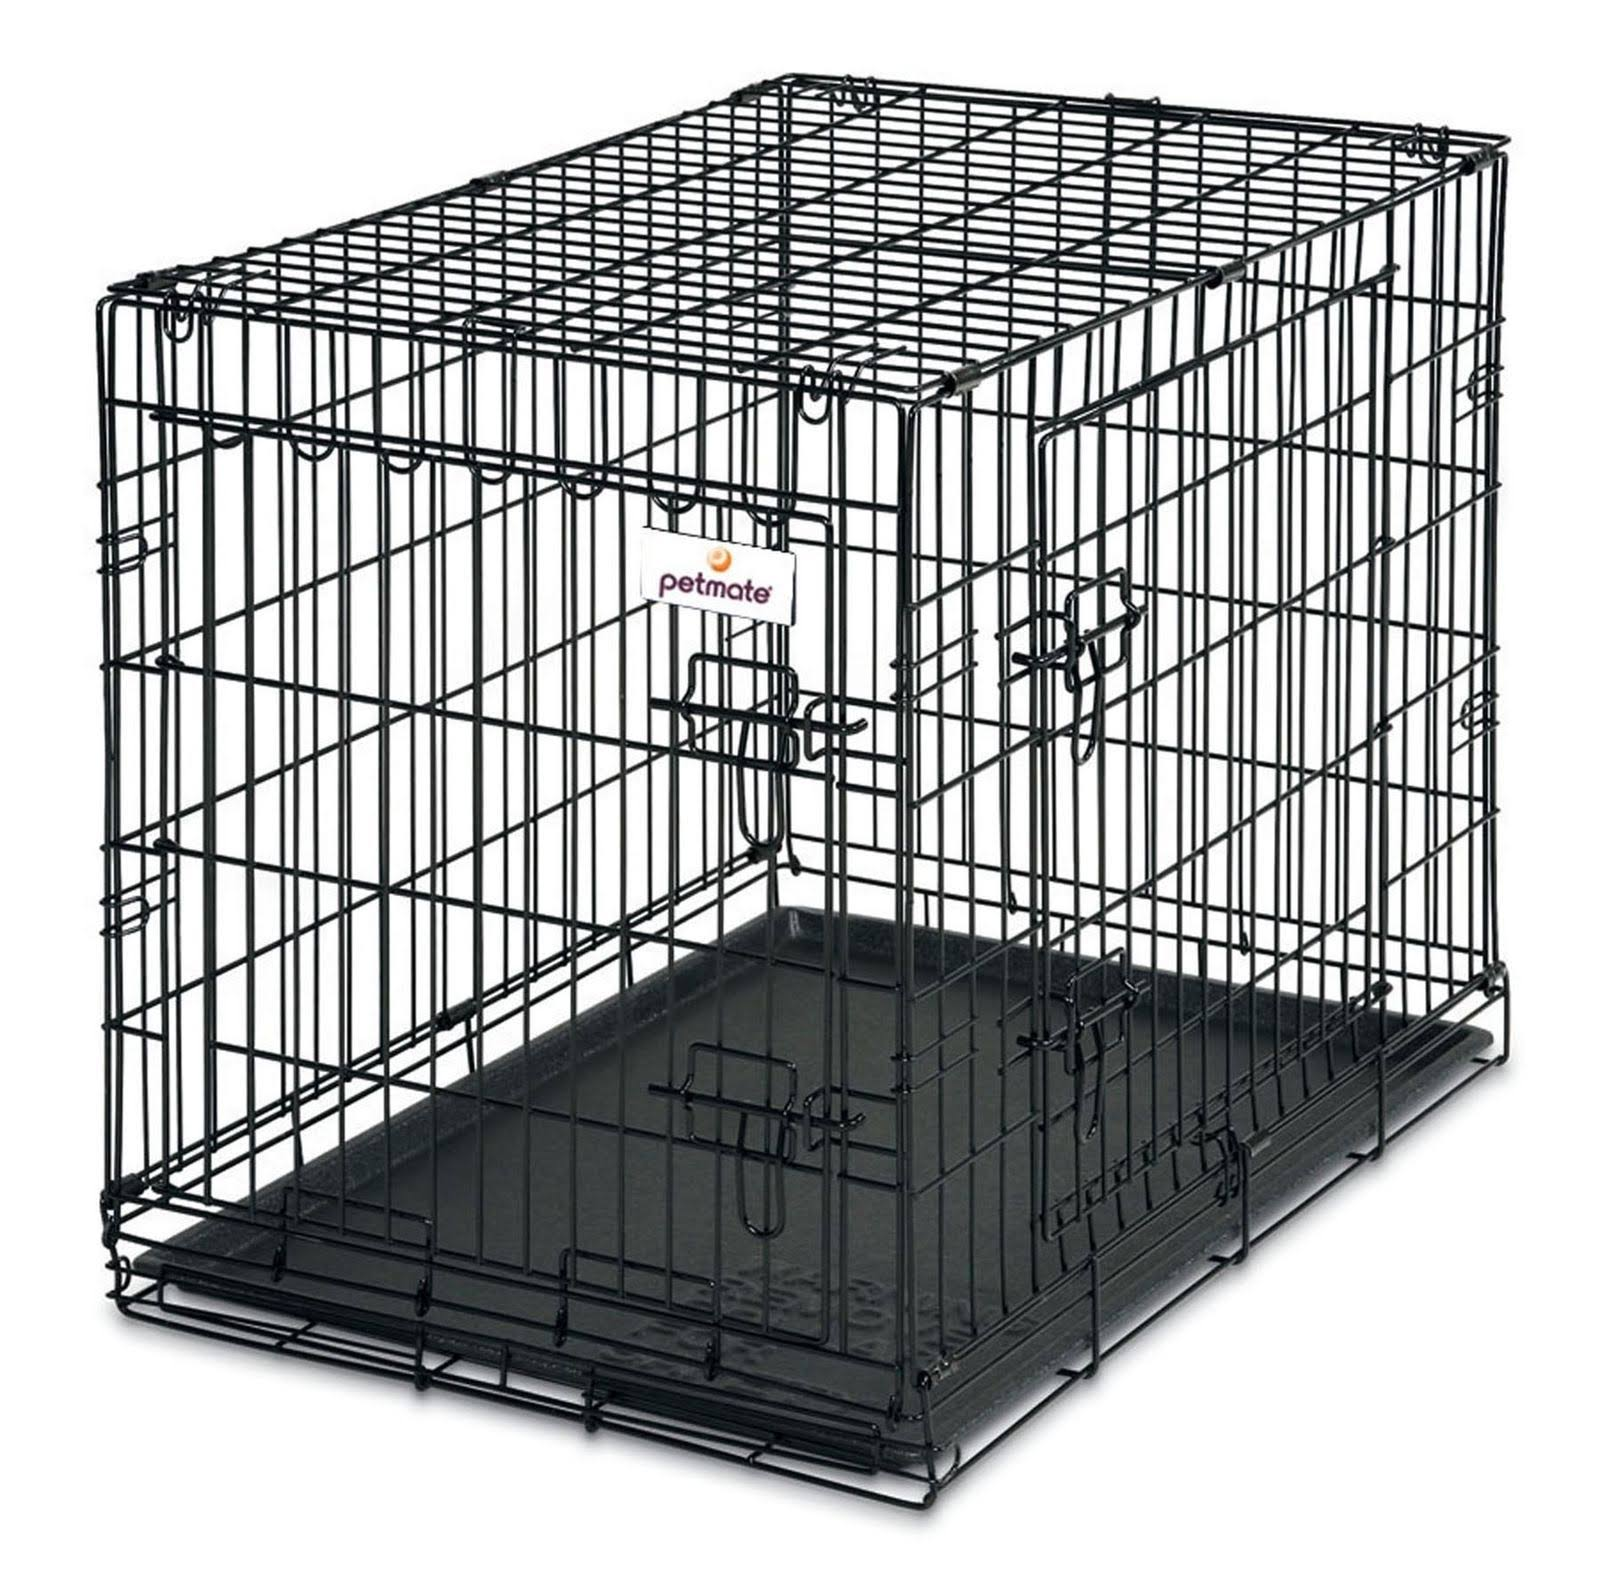 Petmate 2 Door Training Retreat Wire Crate Pet Kennel - Black, 76cm